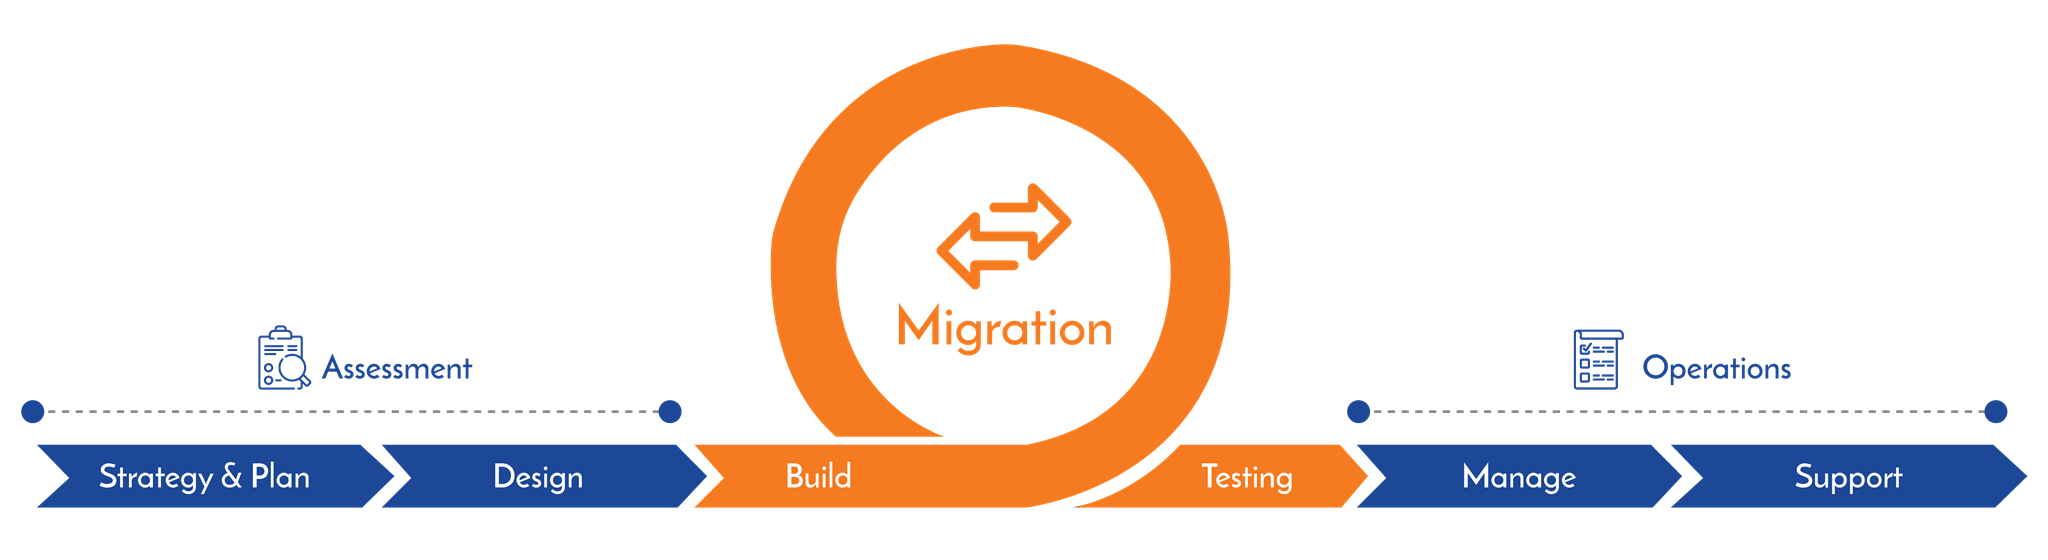 Platform Migration Methodology